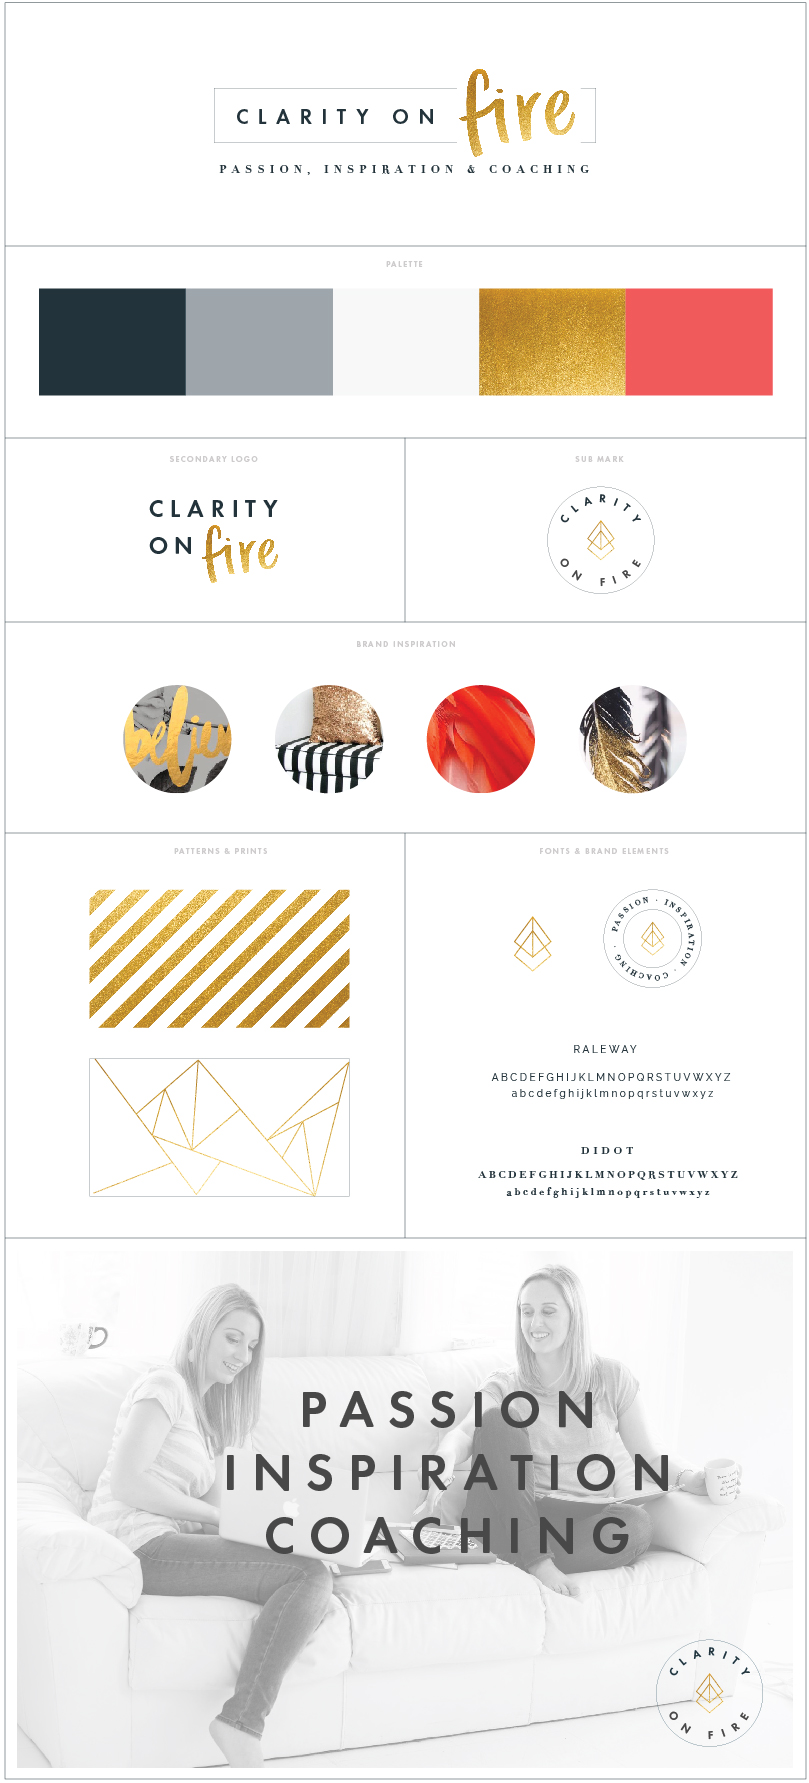 Clarity on Fire Brand Style Guide Samantha Madeo Design